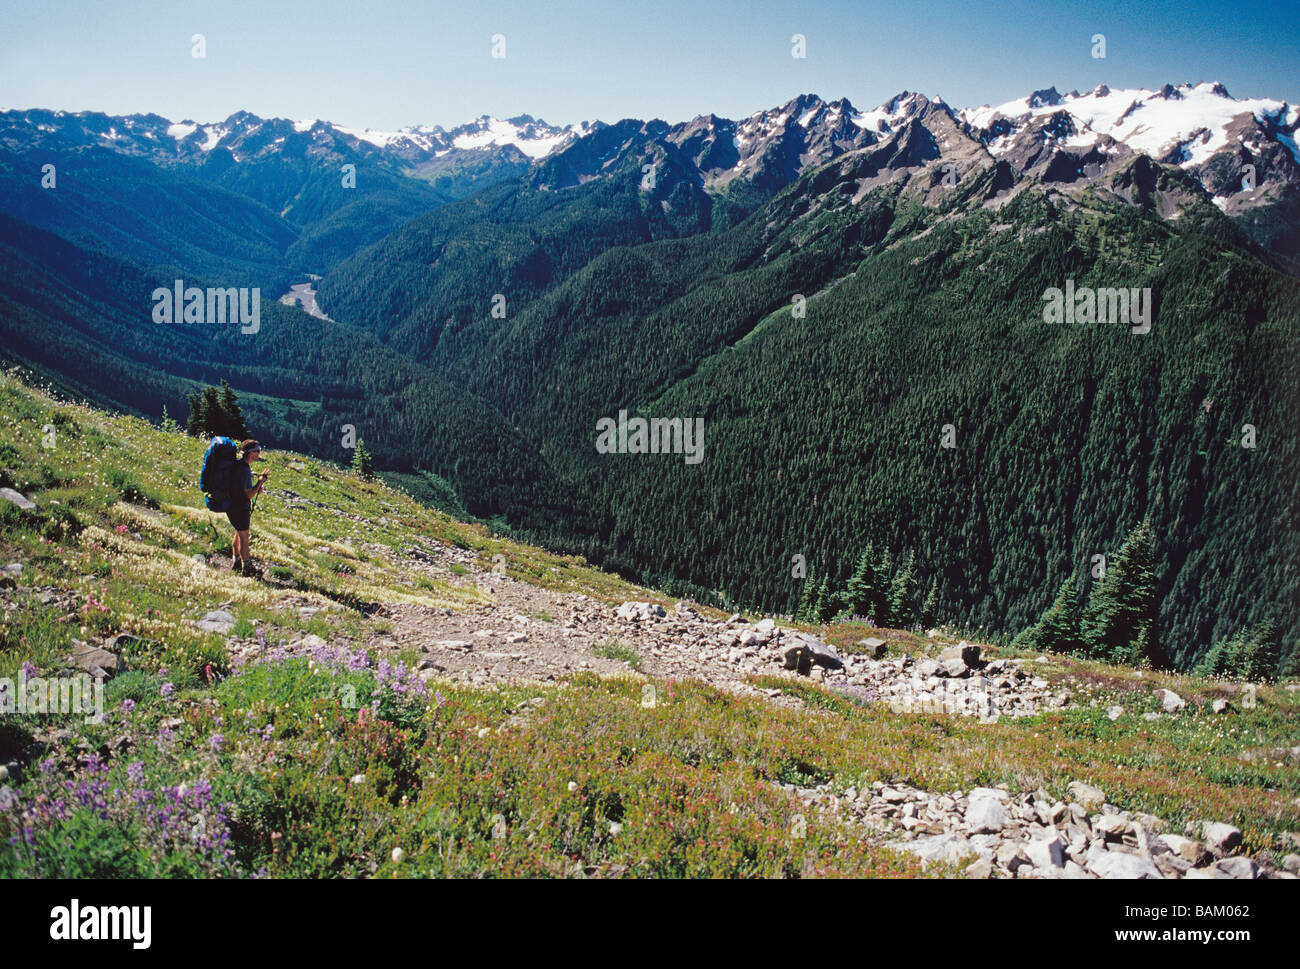 Backpacker on bailey traverse - Stock Image